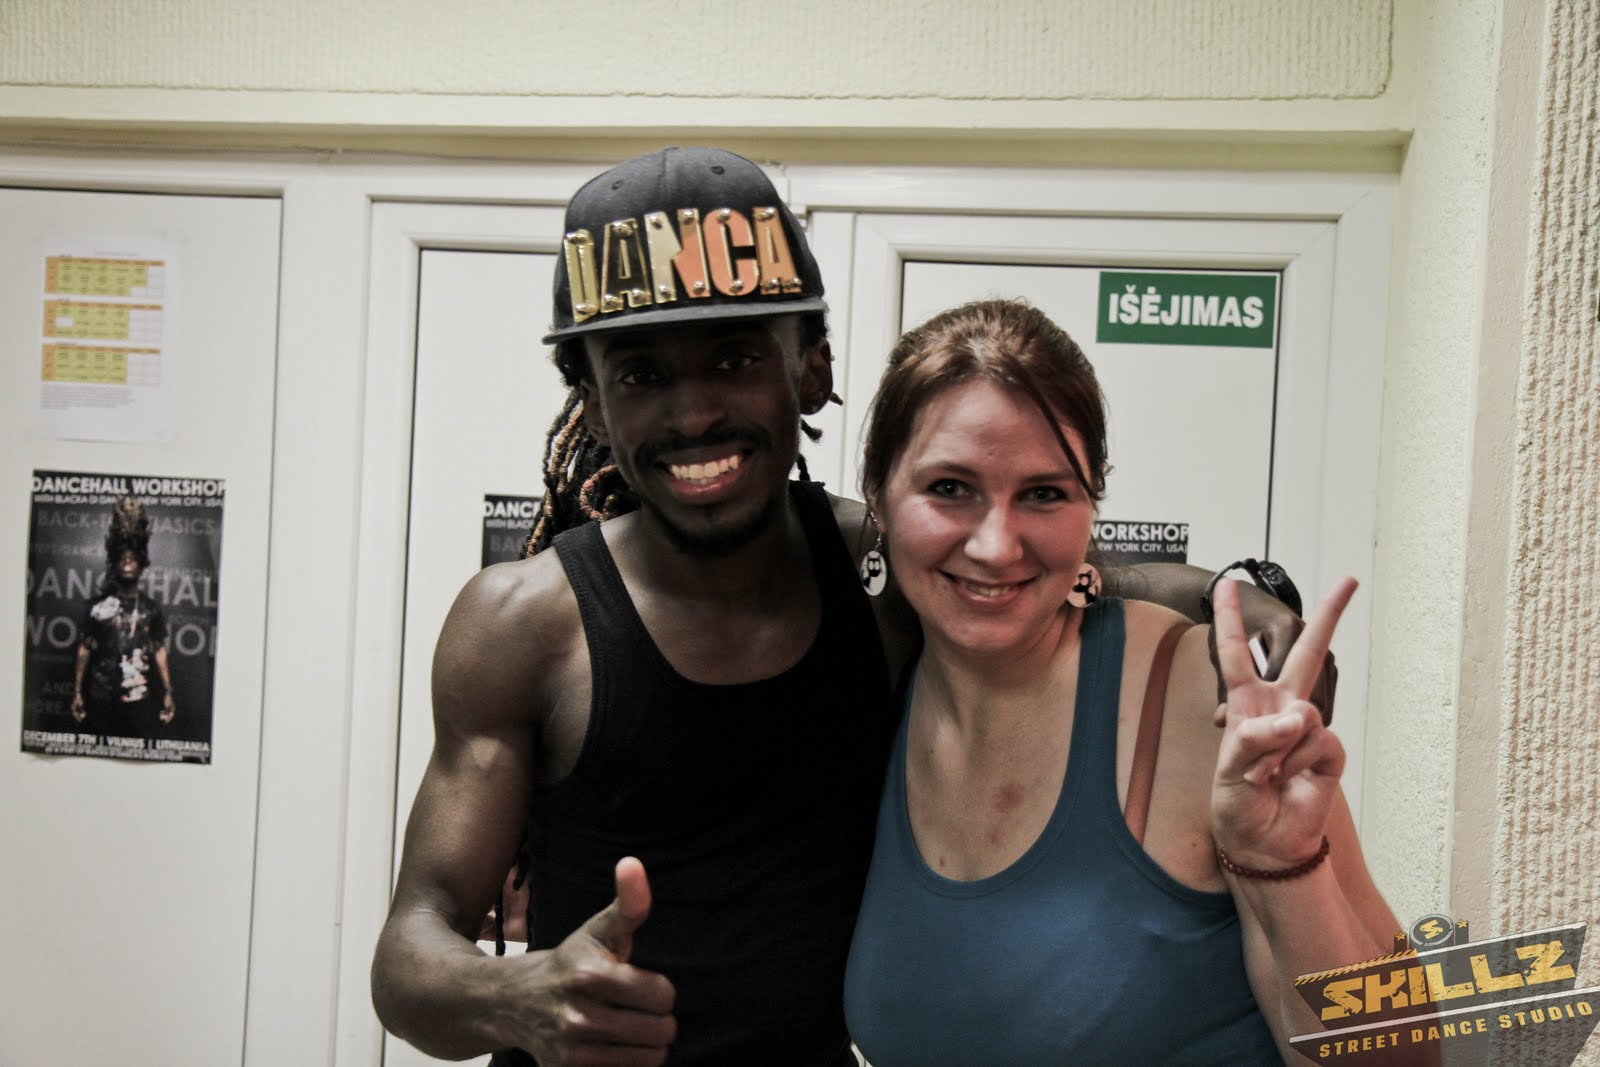 Dancehall workshop with Black Di Danca (USA, New Y - IMG_6768.jpg